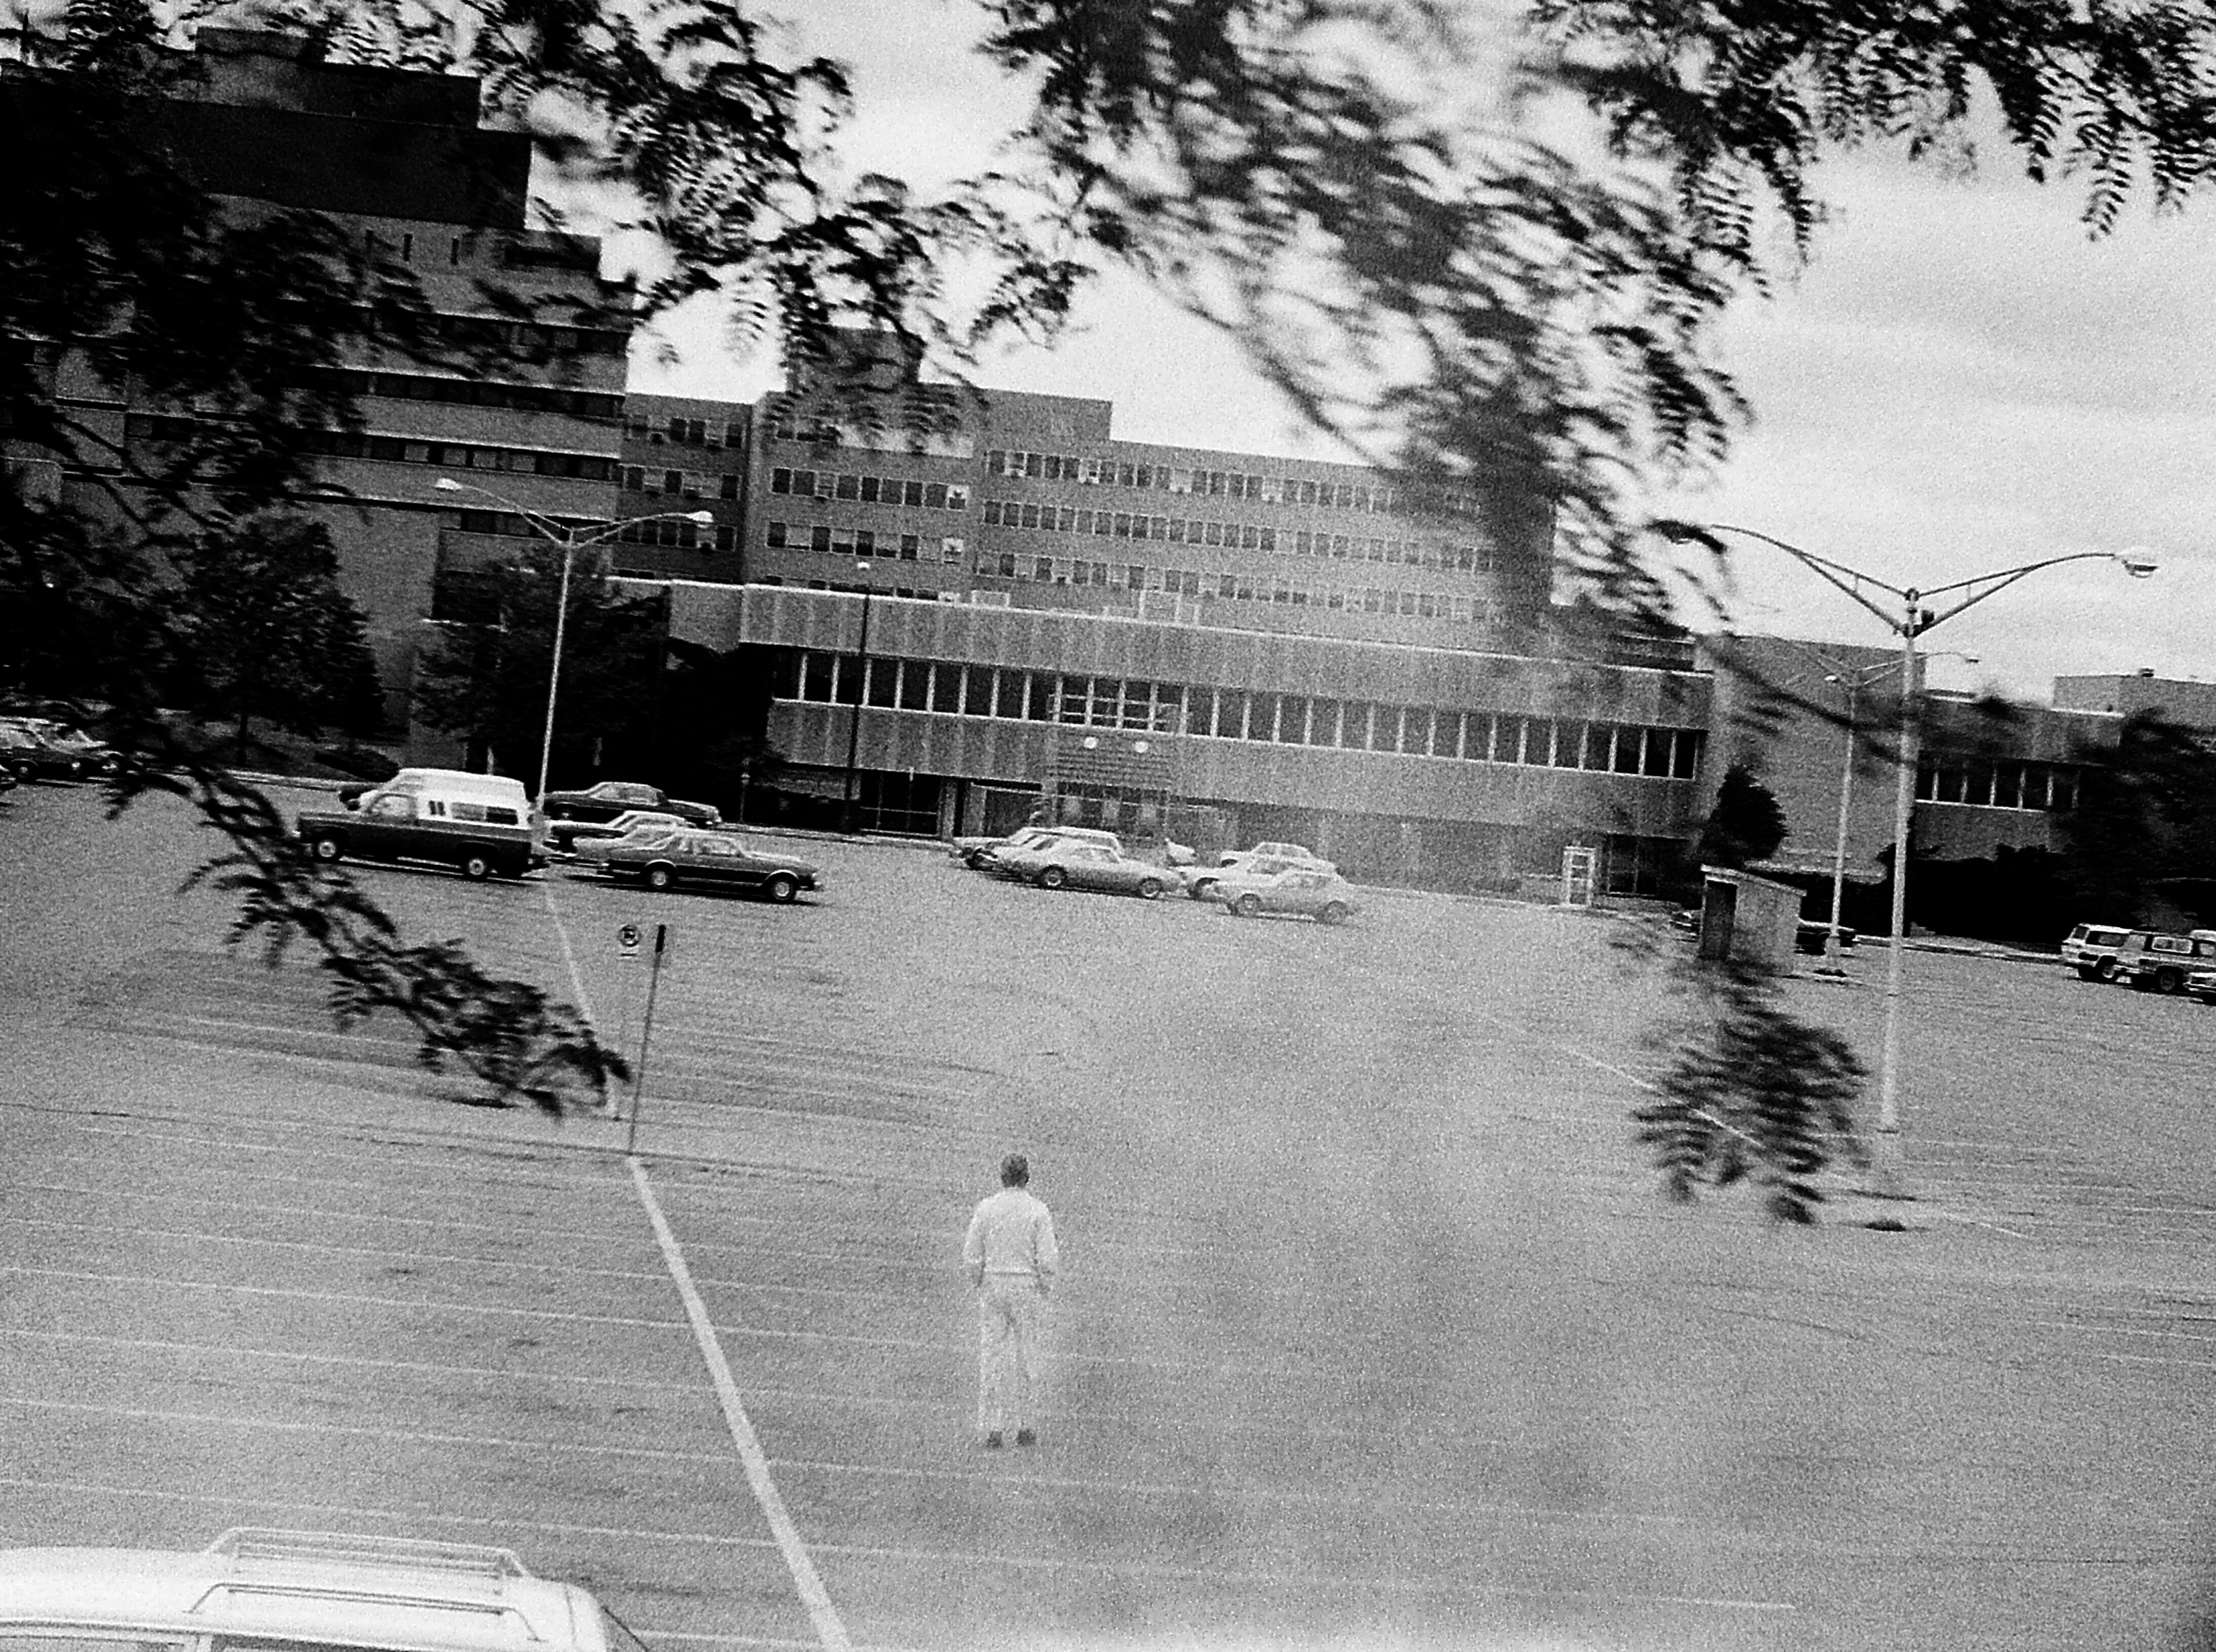 Ann Arbor Campus Parking Lot, 1978 image